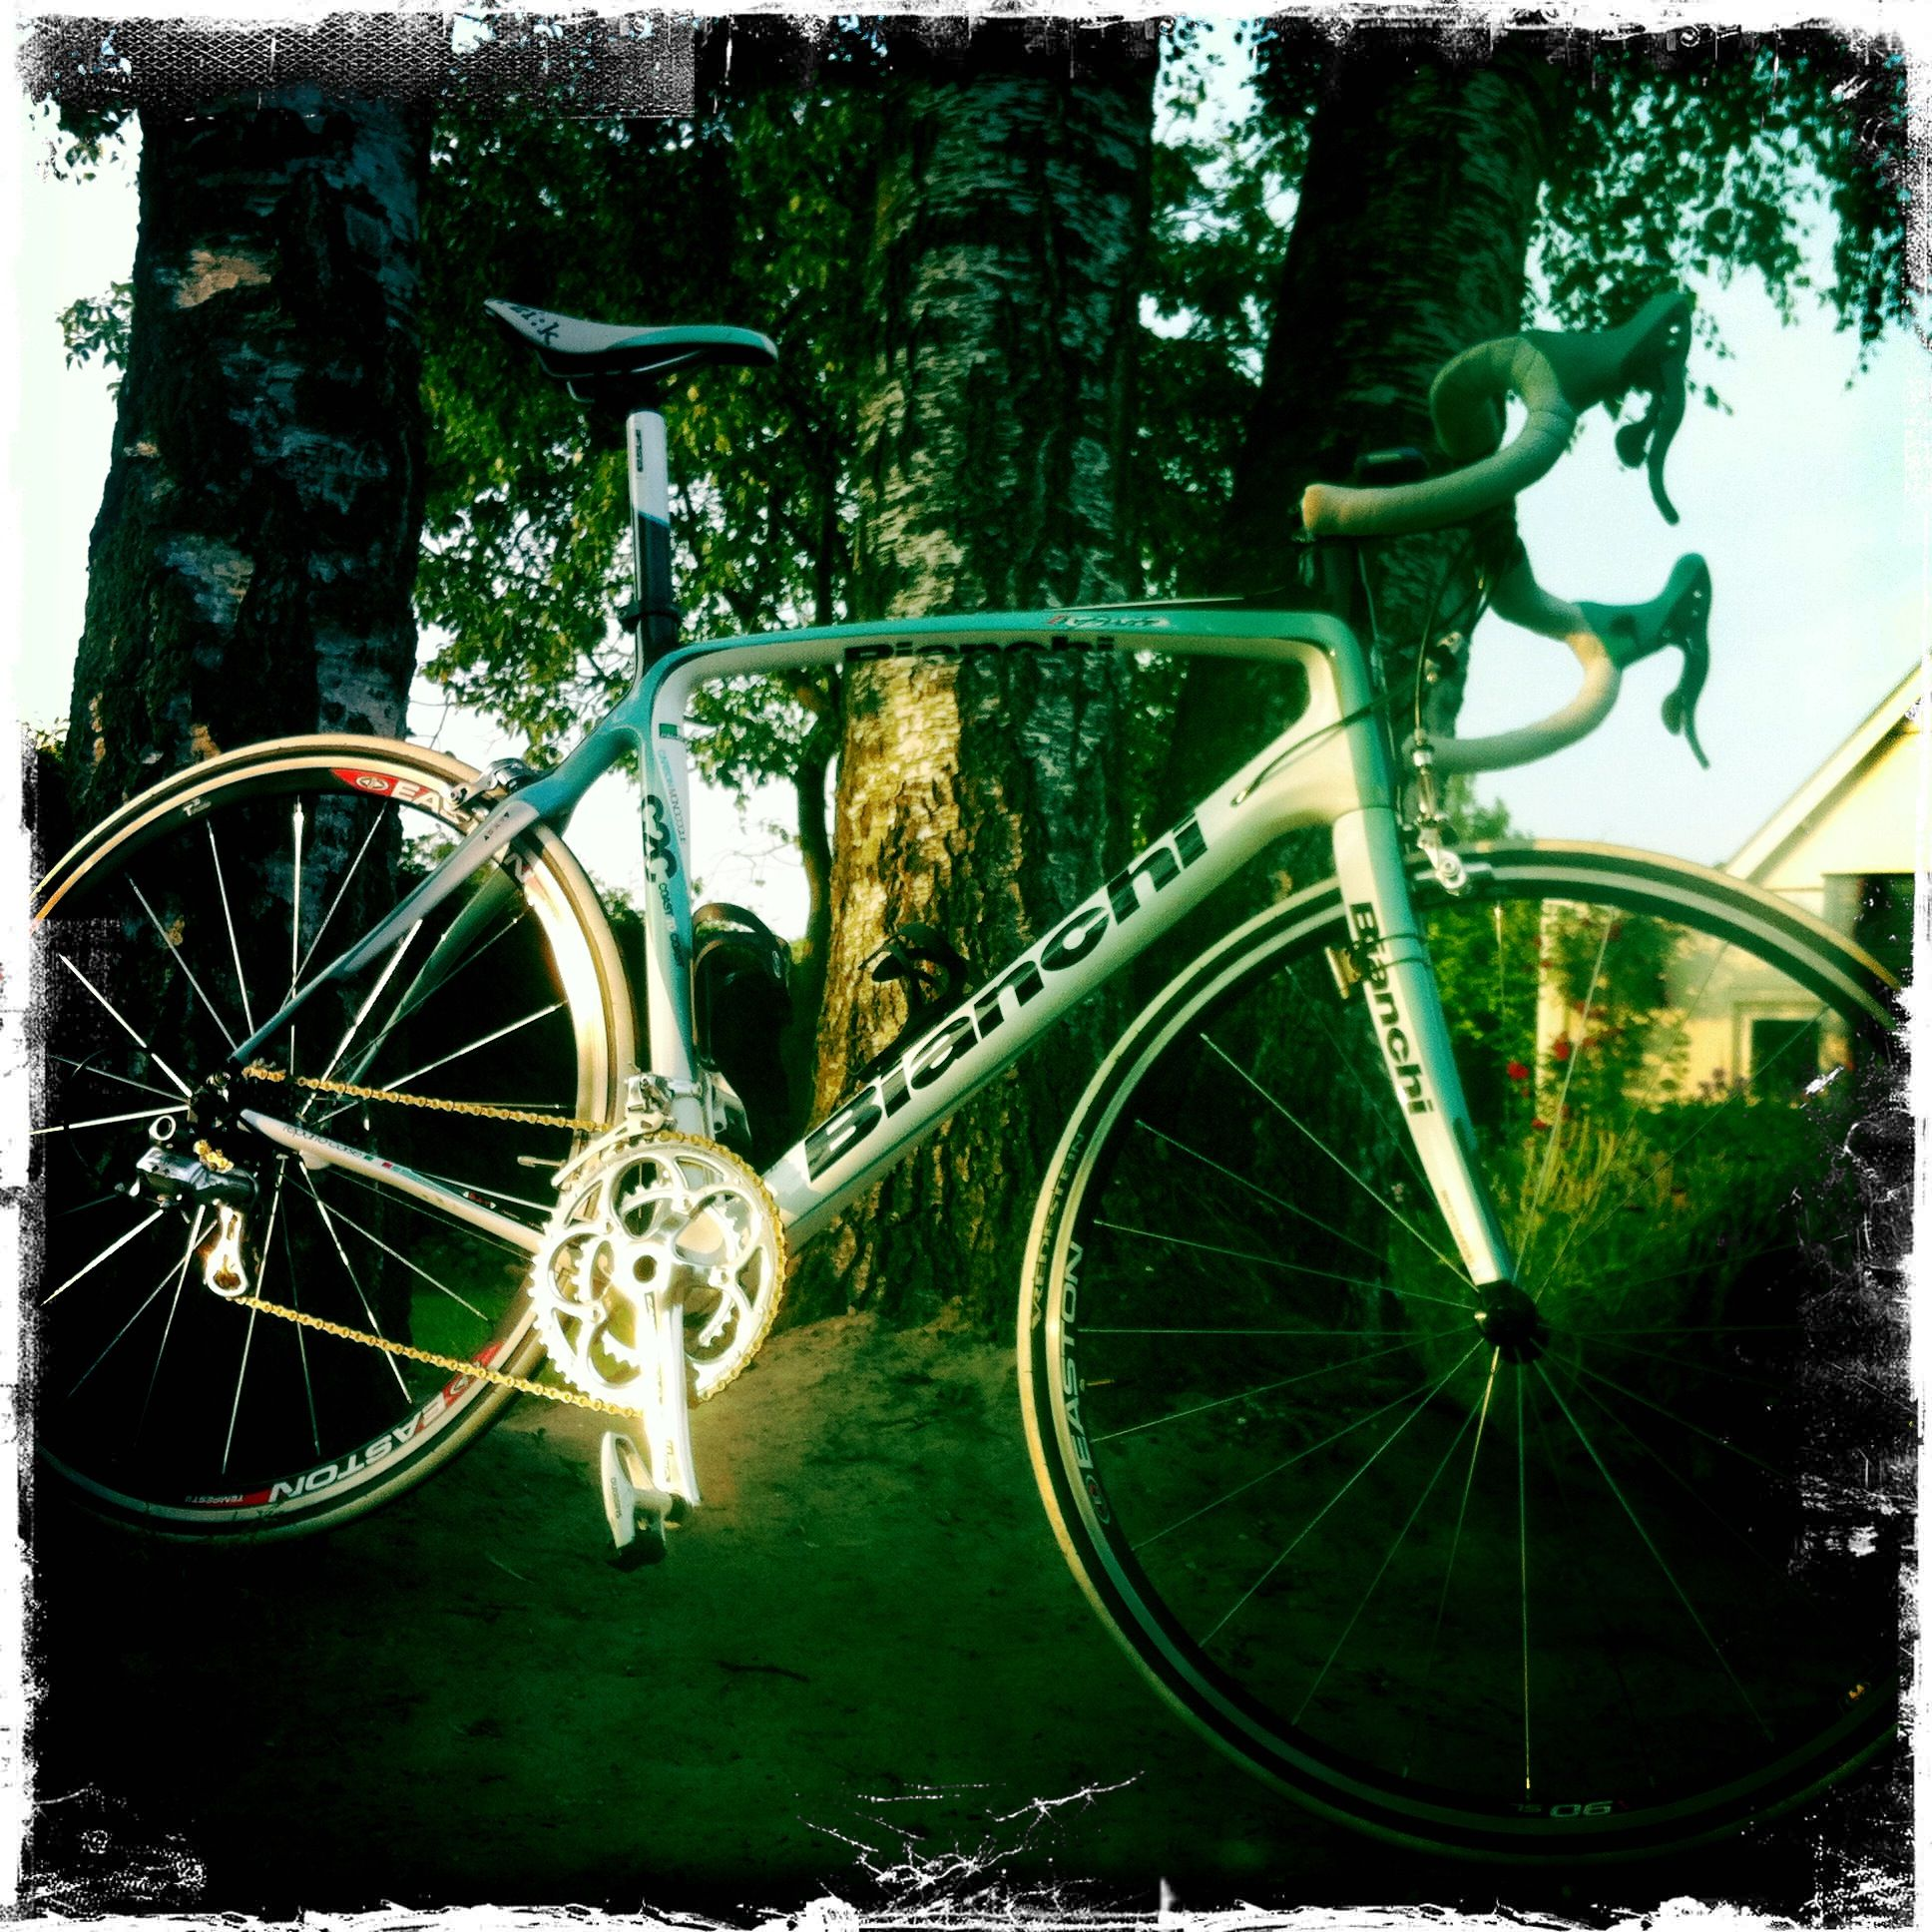 Bianchi Infinito from one of our readers.